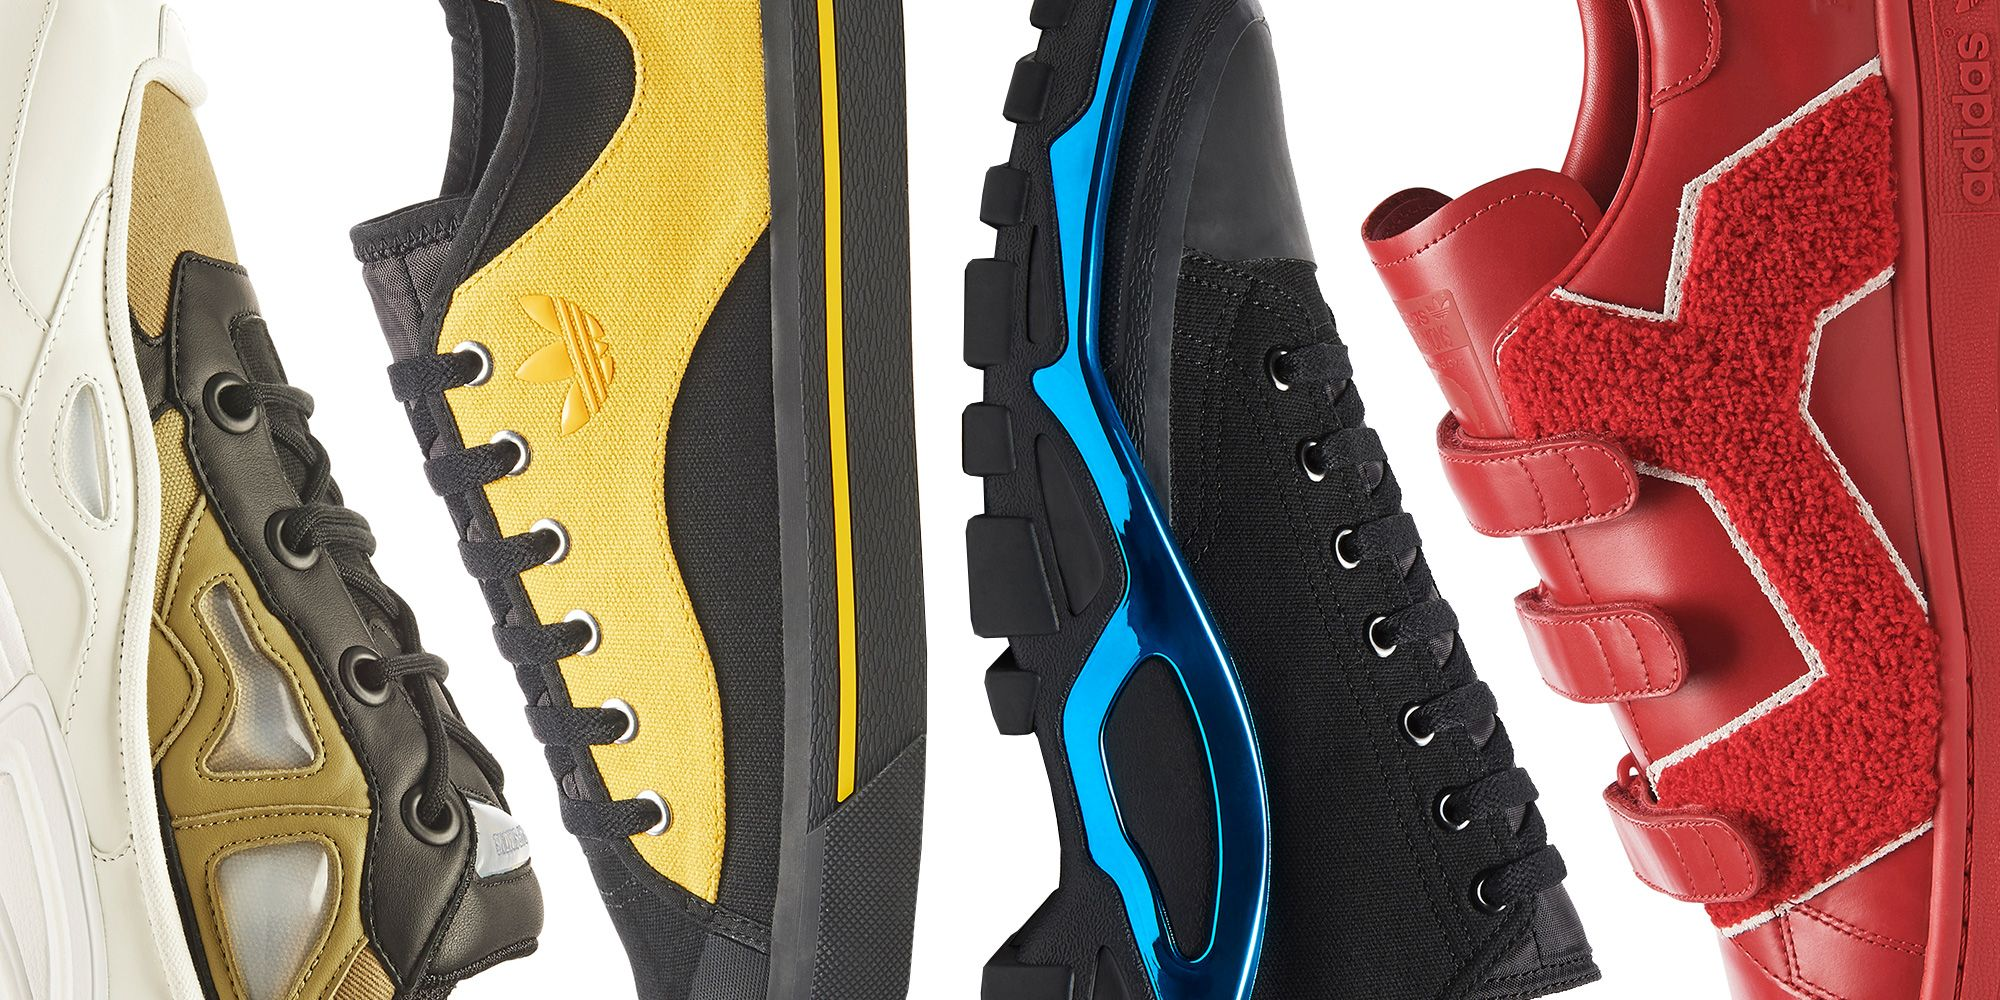 dbc64d9d9b1ea Raf Simons Adidas Sneakers Are Everything - Raf Simons Launches New Adidas